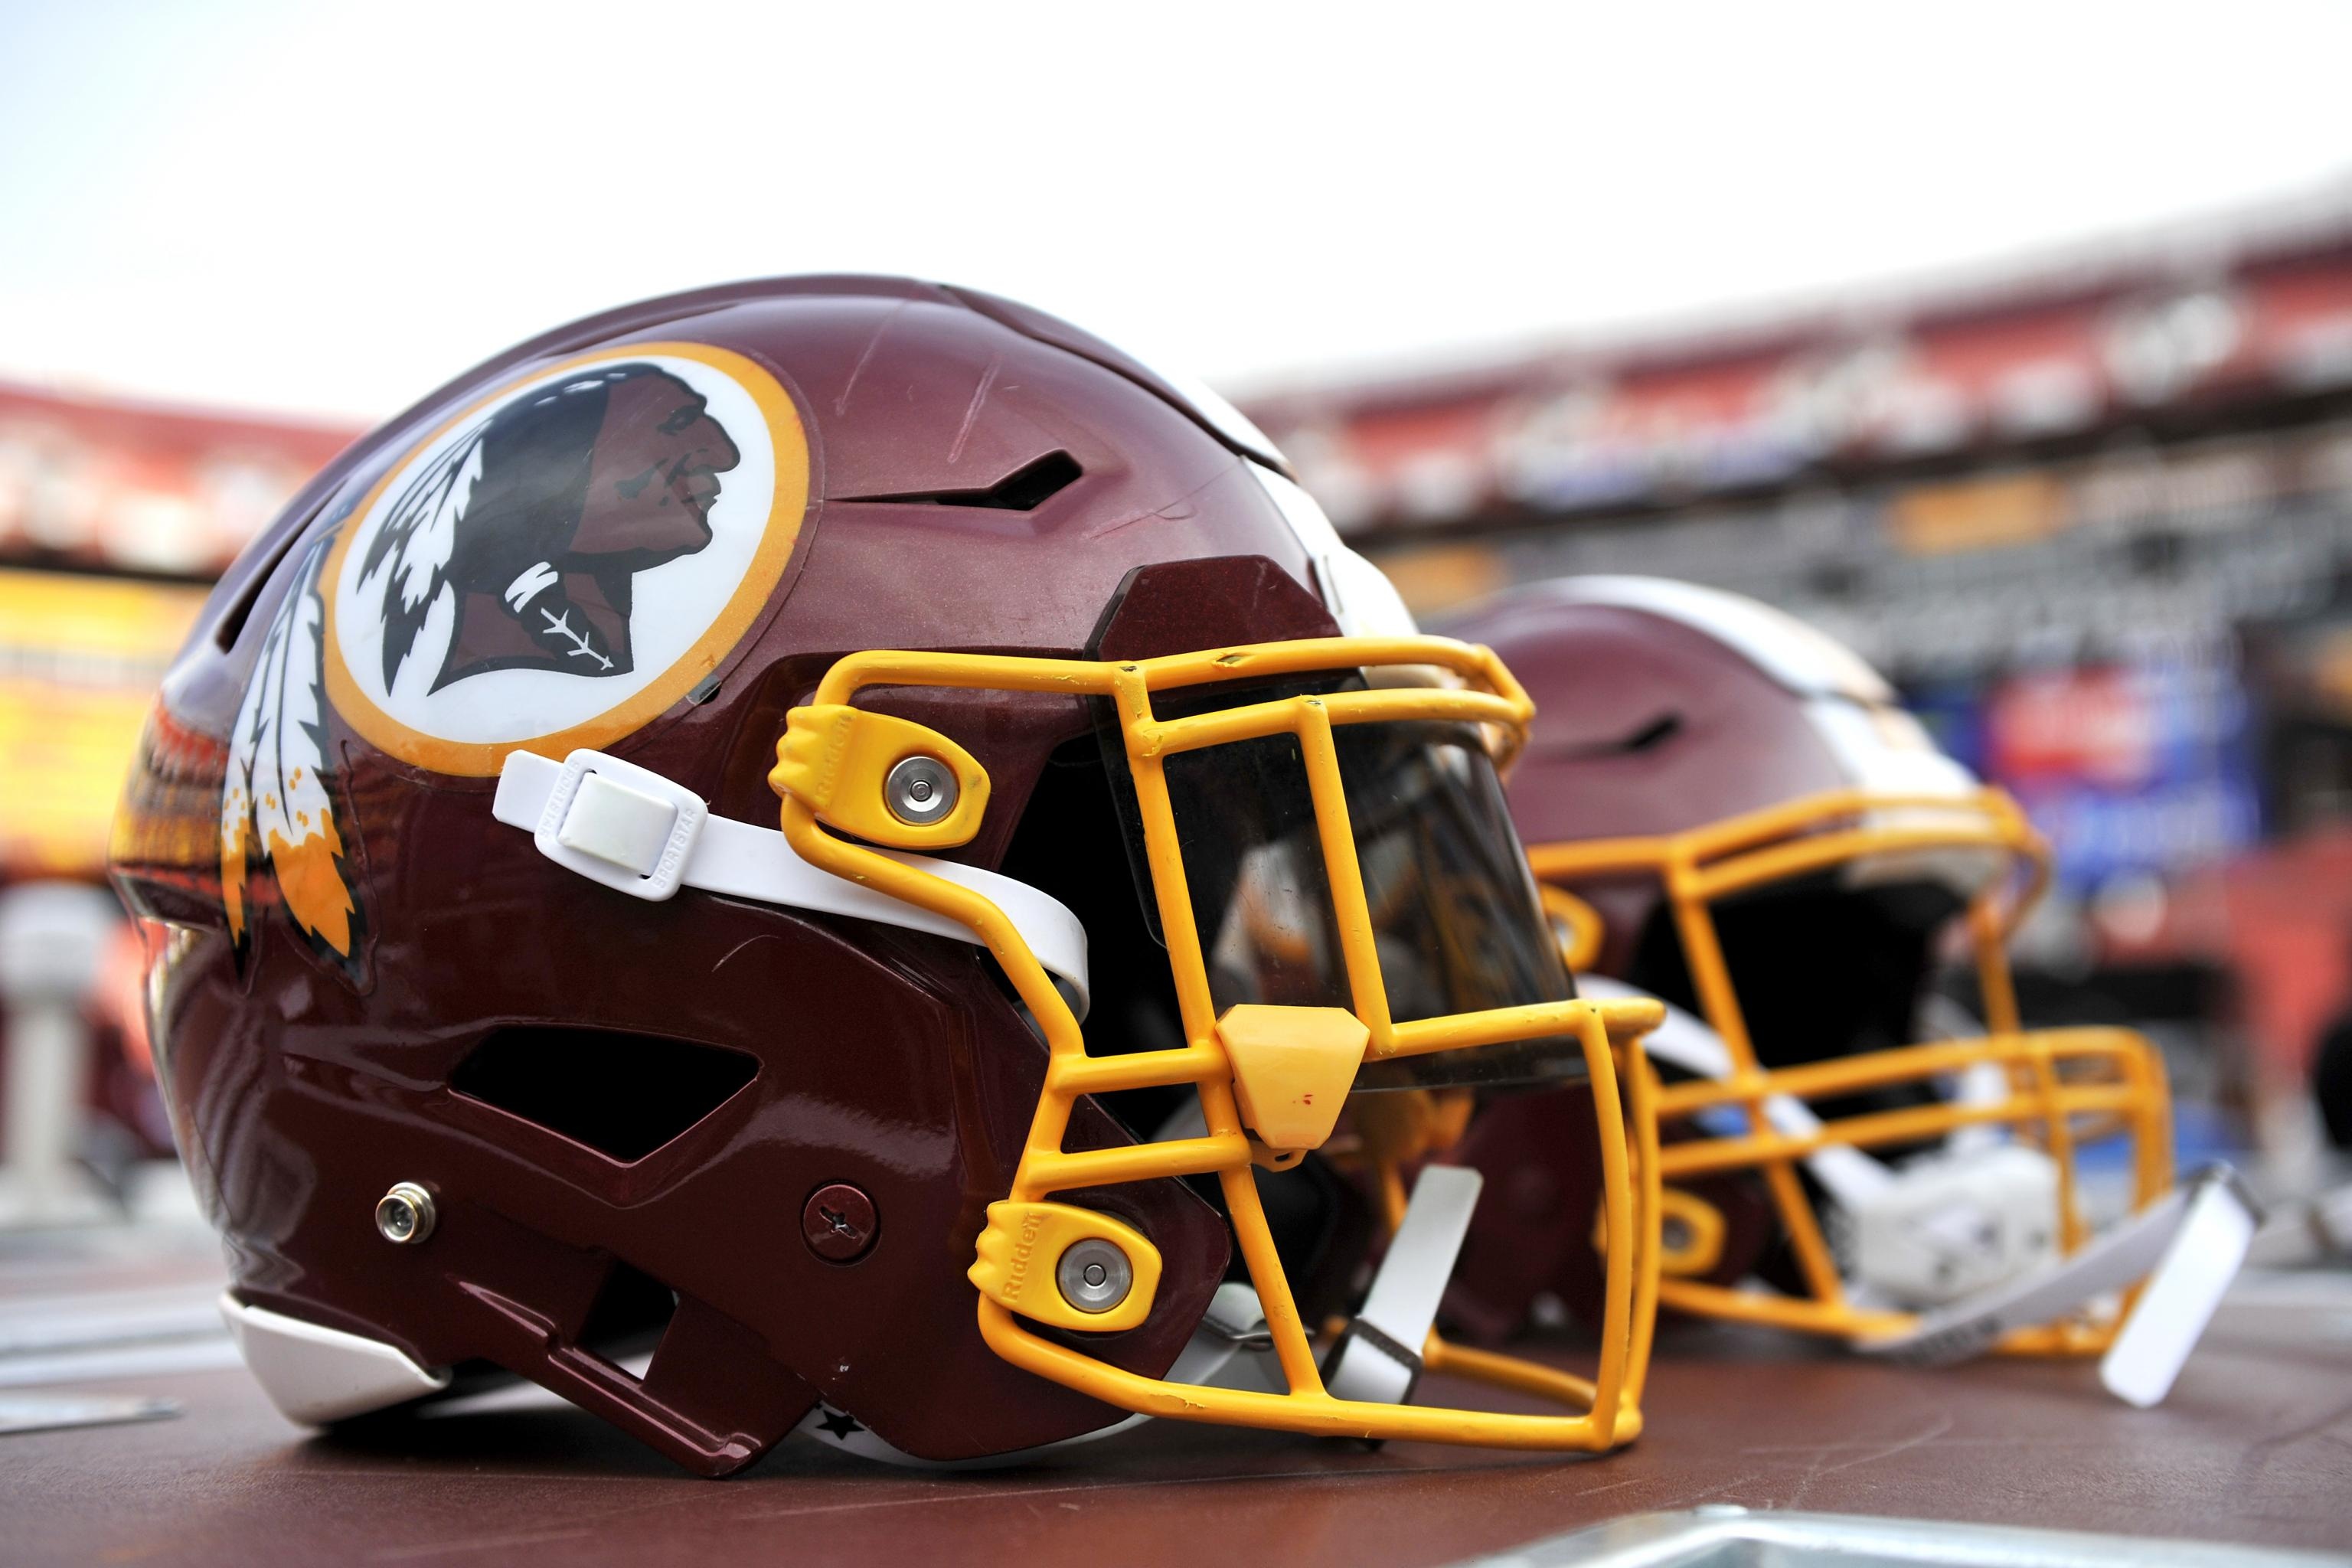 d0cfd49f Report: Almost 40 Employees Left Redskins After Brian Lafemina's ...